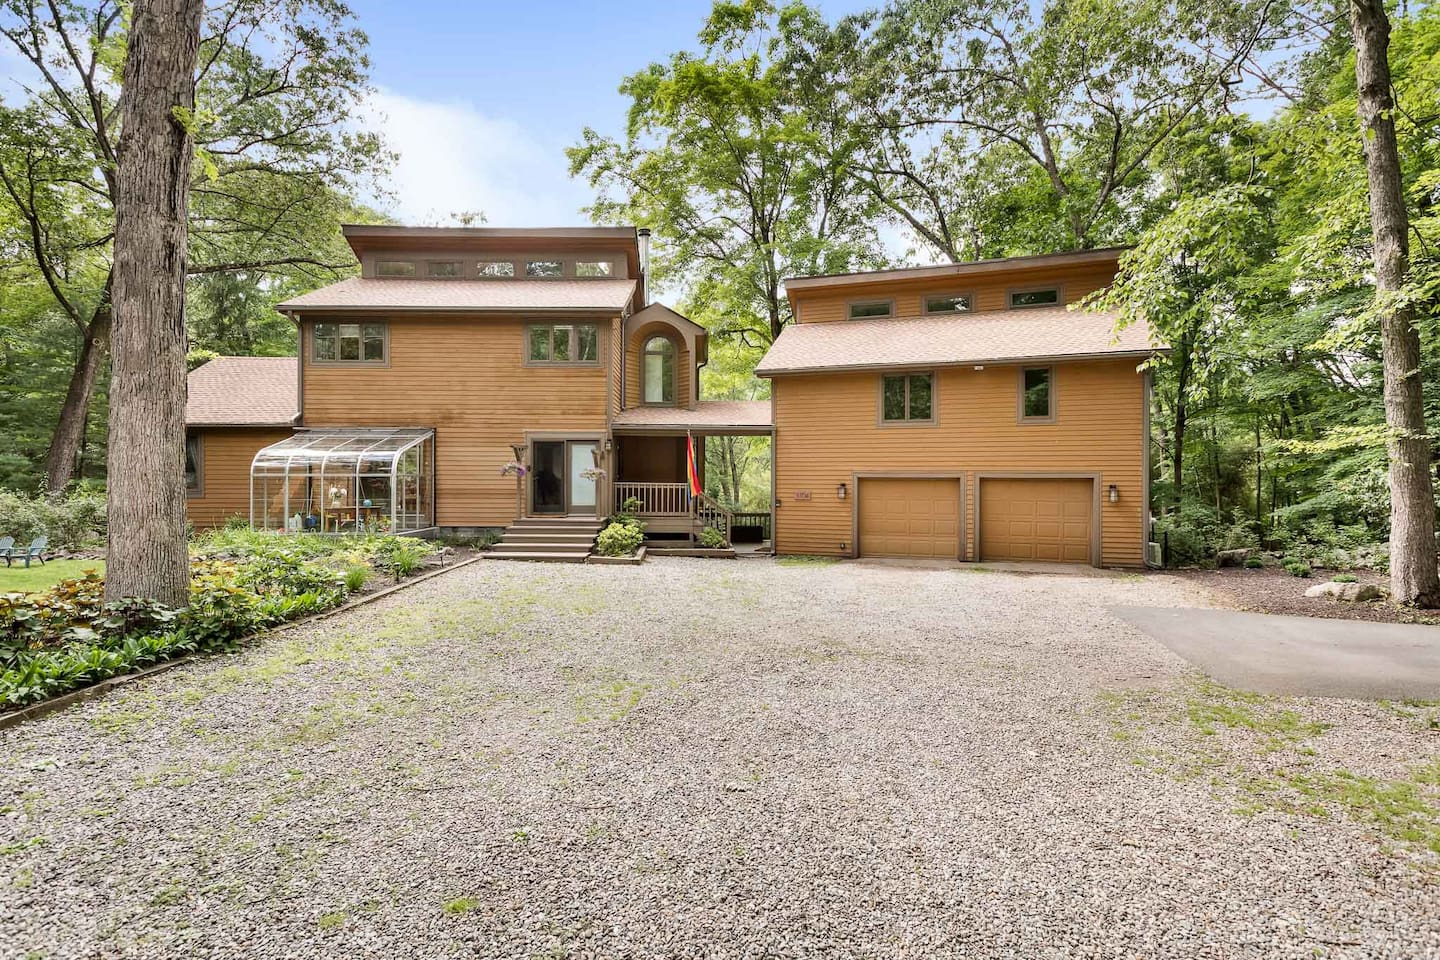 Enjoy a peaceful retreat in the woods of the Hudson Valley, moments away from the Hudson River, nature trails and restaurants. The apartment comprises the entire top floor of the building on the right. You have a private entrance.